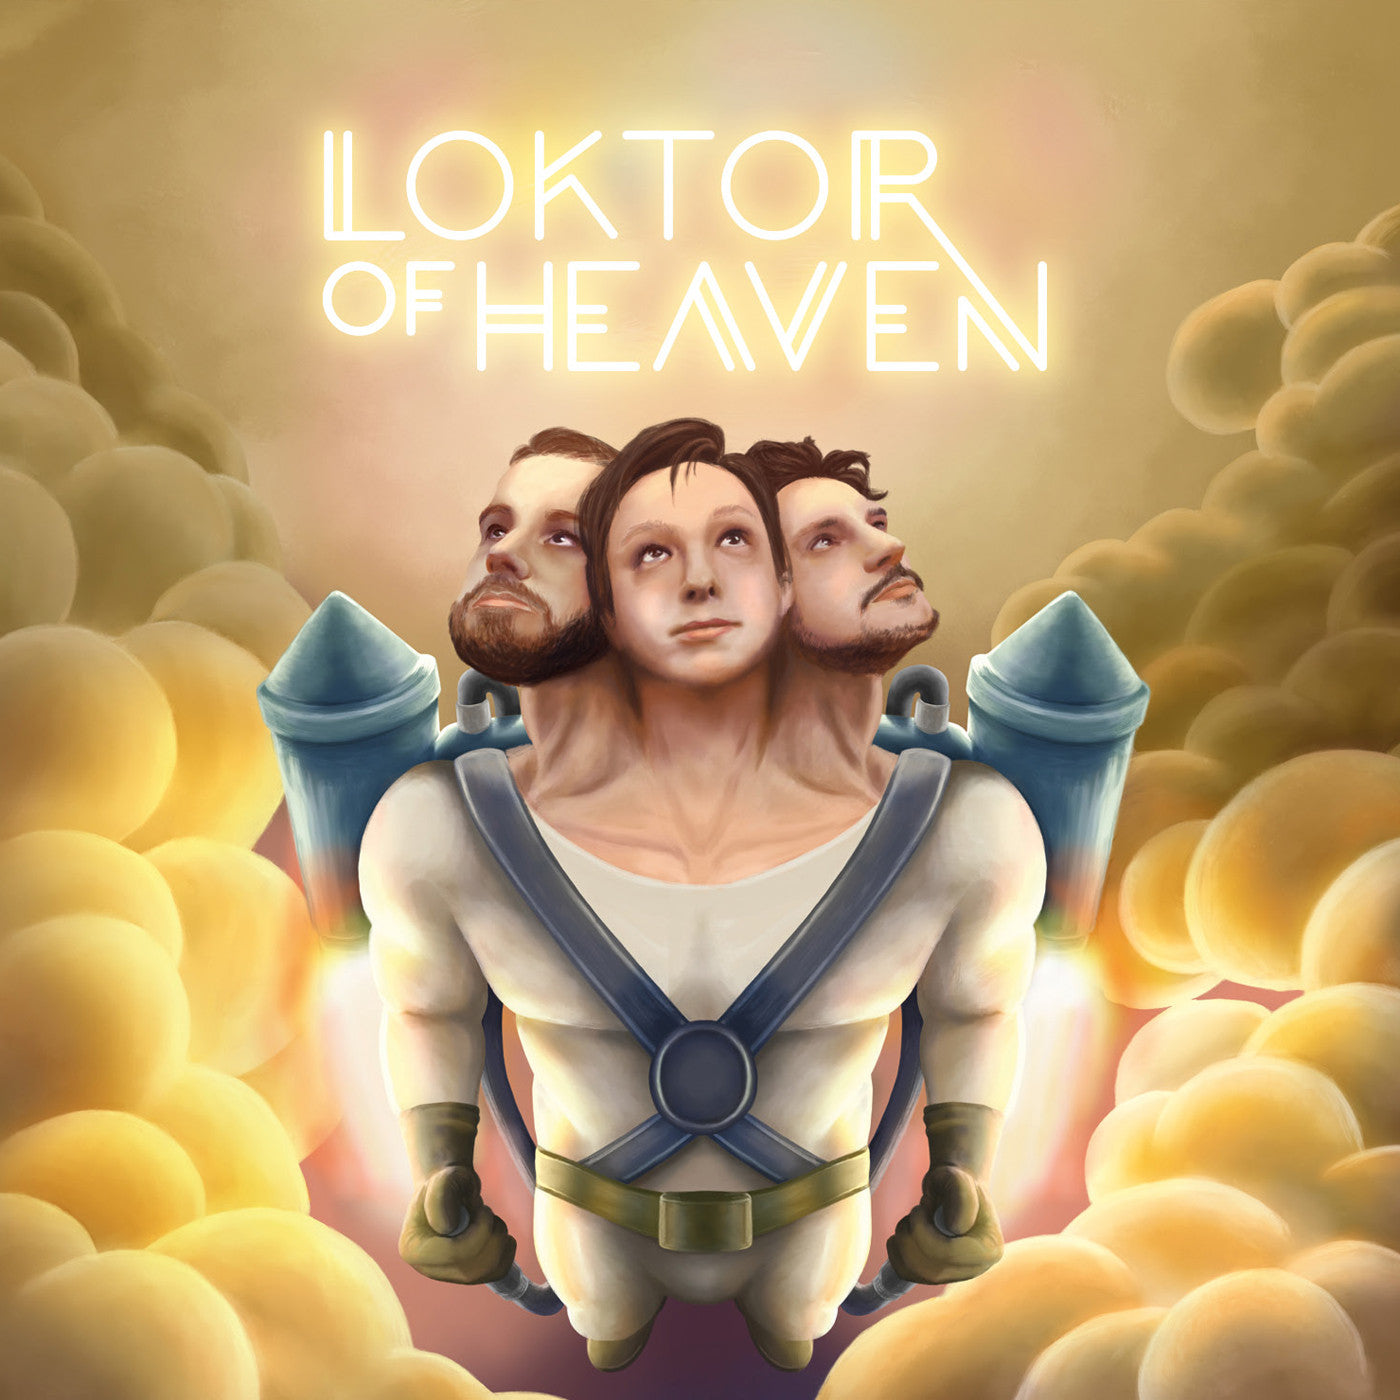 Loktor Of Heaven (SWR77)